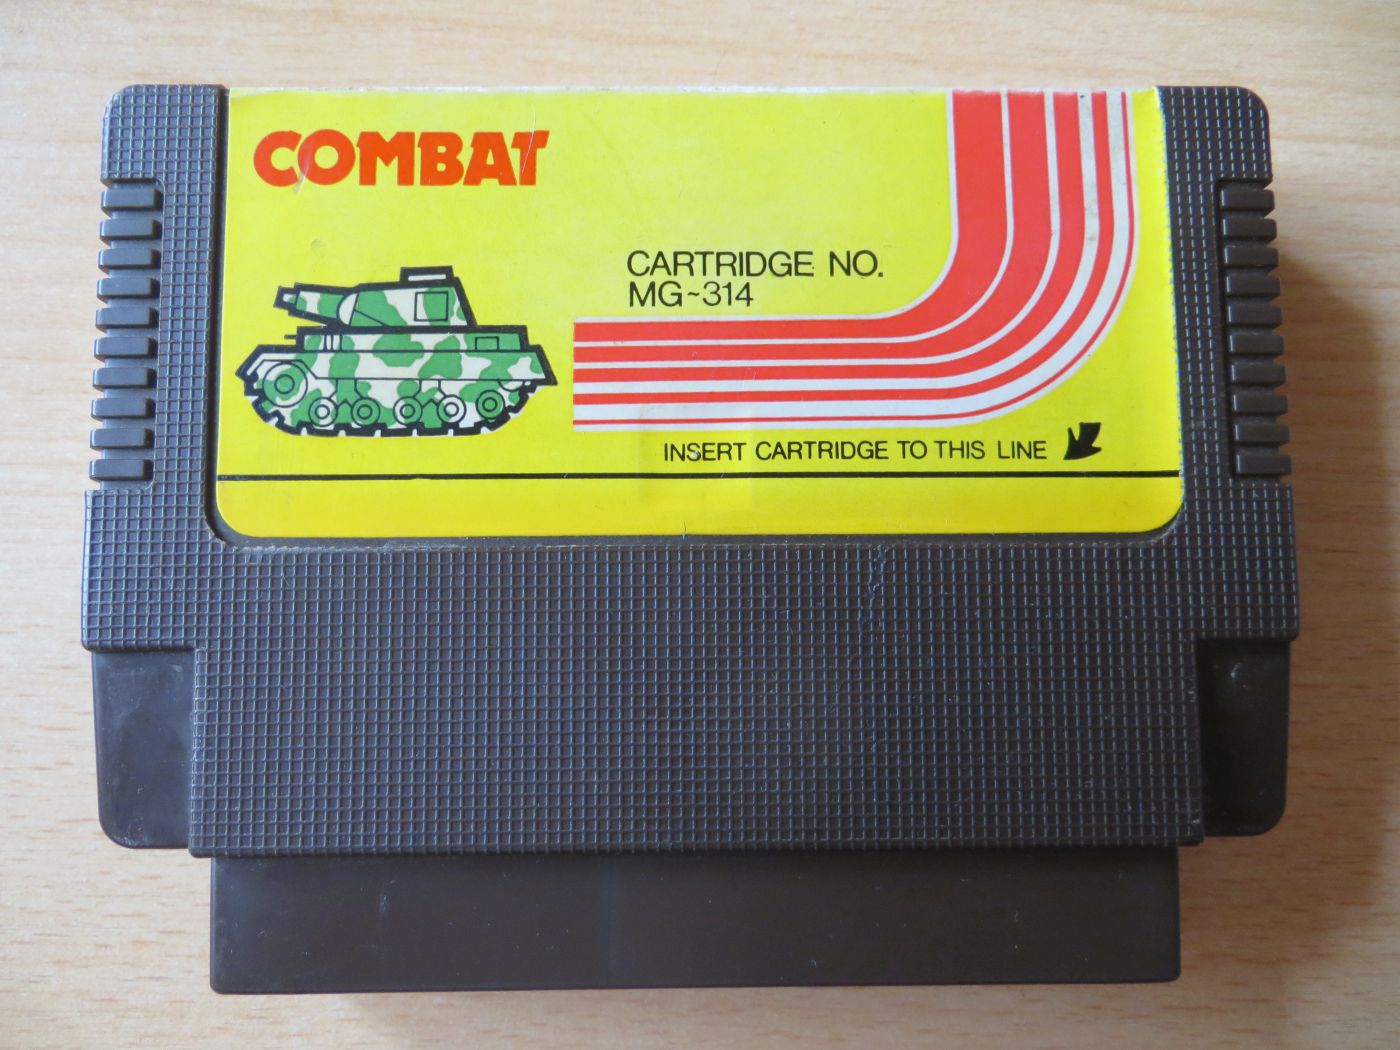 Combat - Cartridge